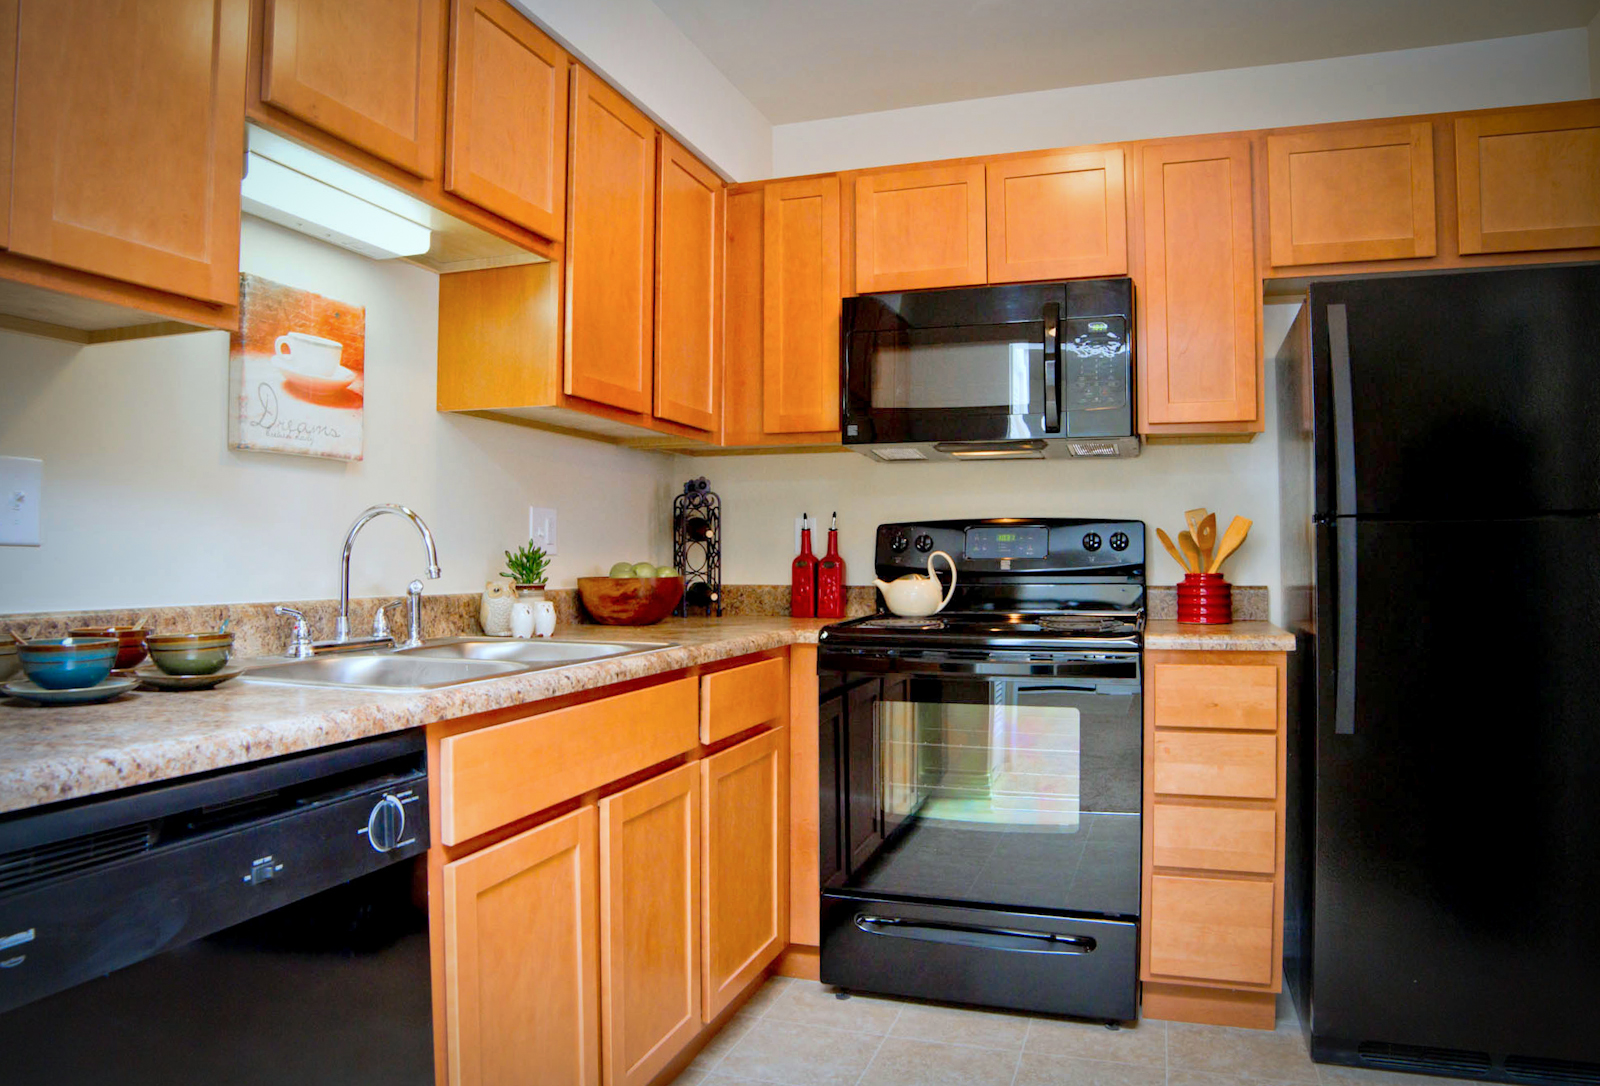 Westminster Townhomes & Apartments Amenities